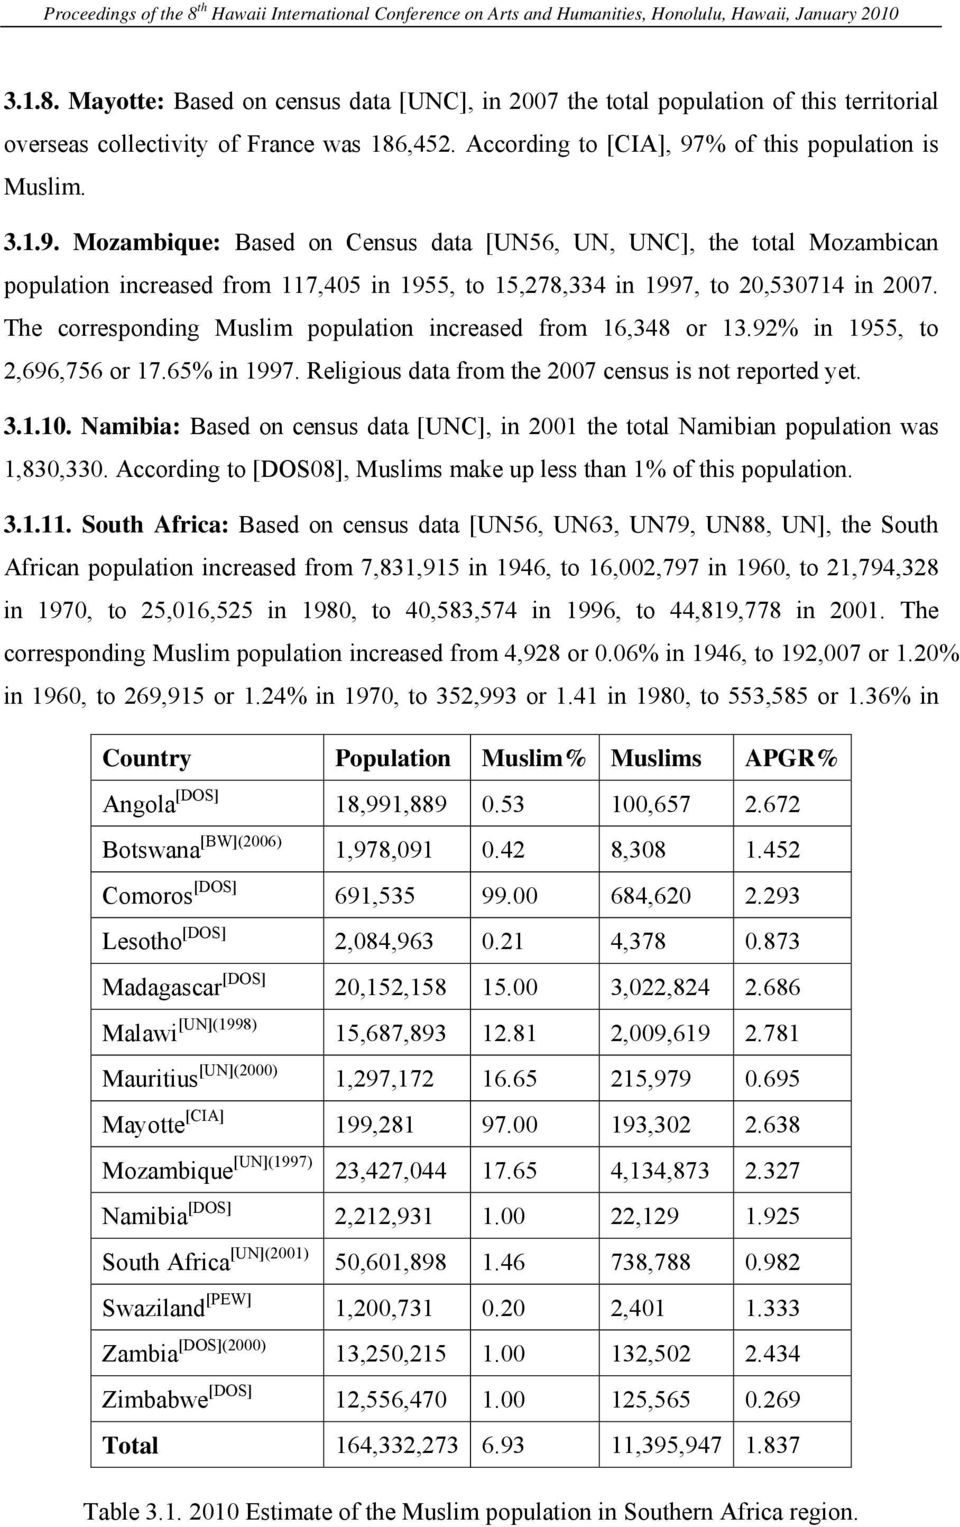 The corresponding Muslim population increased from 16,348 or 13.92% in 1955, to 2,696,756 or 17.65% in 1997. Religious data from the 2007 census is not reported yet. 3.1.10.